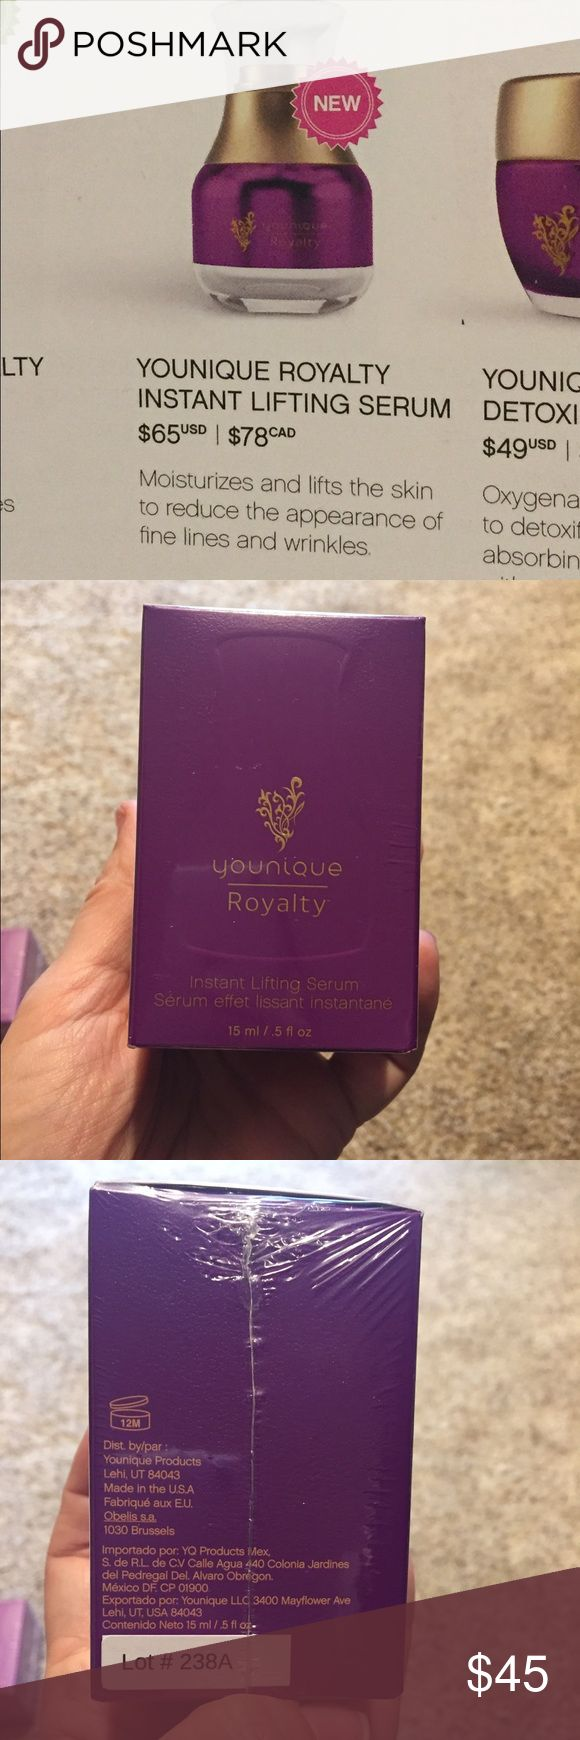 Younique Royalty Instant Lifting Serum New and still in packaging. Instant Lifting Serum is a cream that moisturizes and lifts the skin to reduce the appearance of fine lines and wrinkles. Younique  Makeup